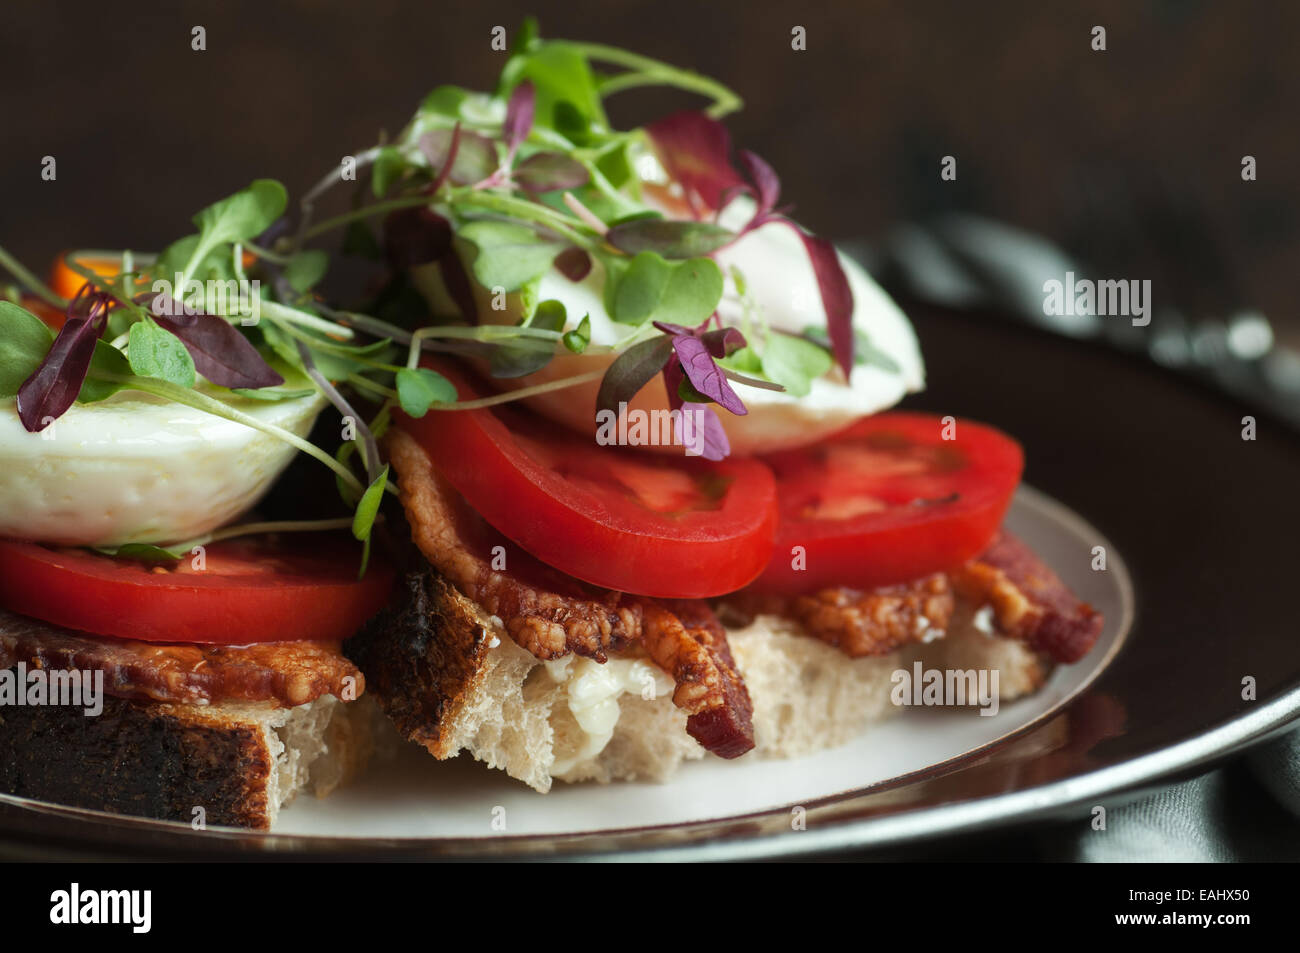 Colorful open faced breakfast sandwich with bacon, tomato, poached egg and sprouts on fresh country bread Stock Photo